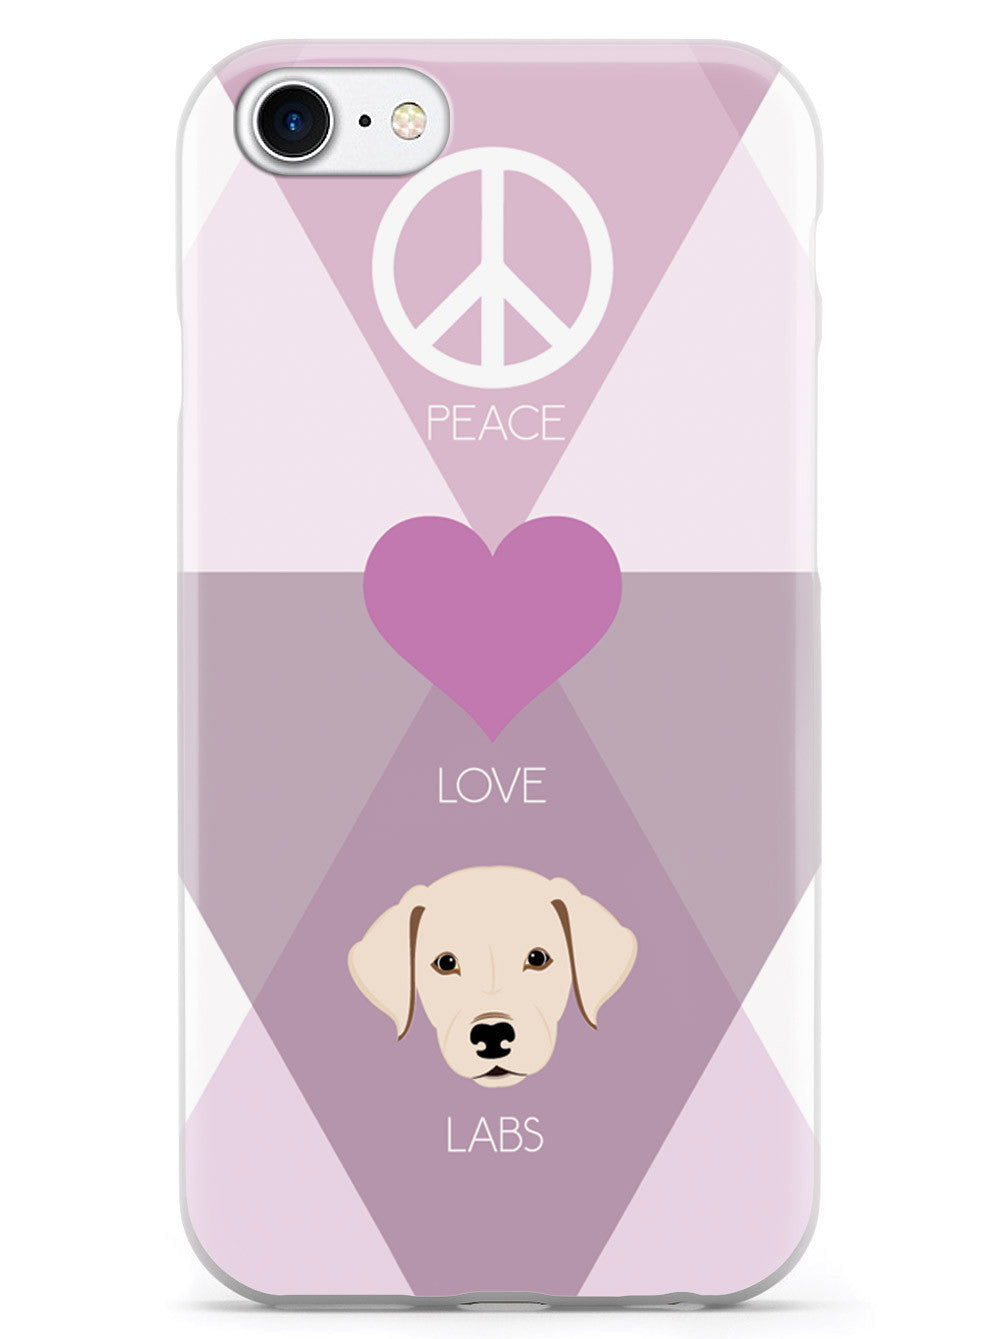 Peace, Love & Labs Case